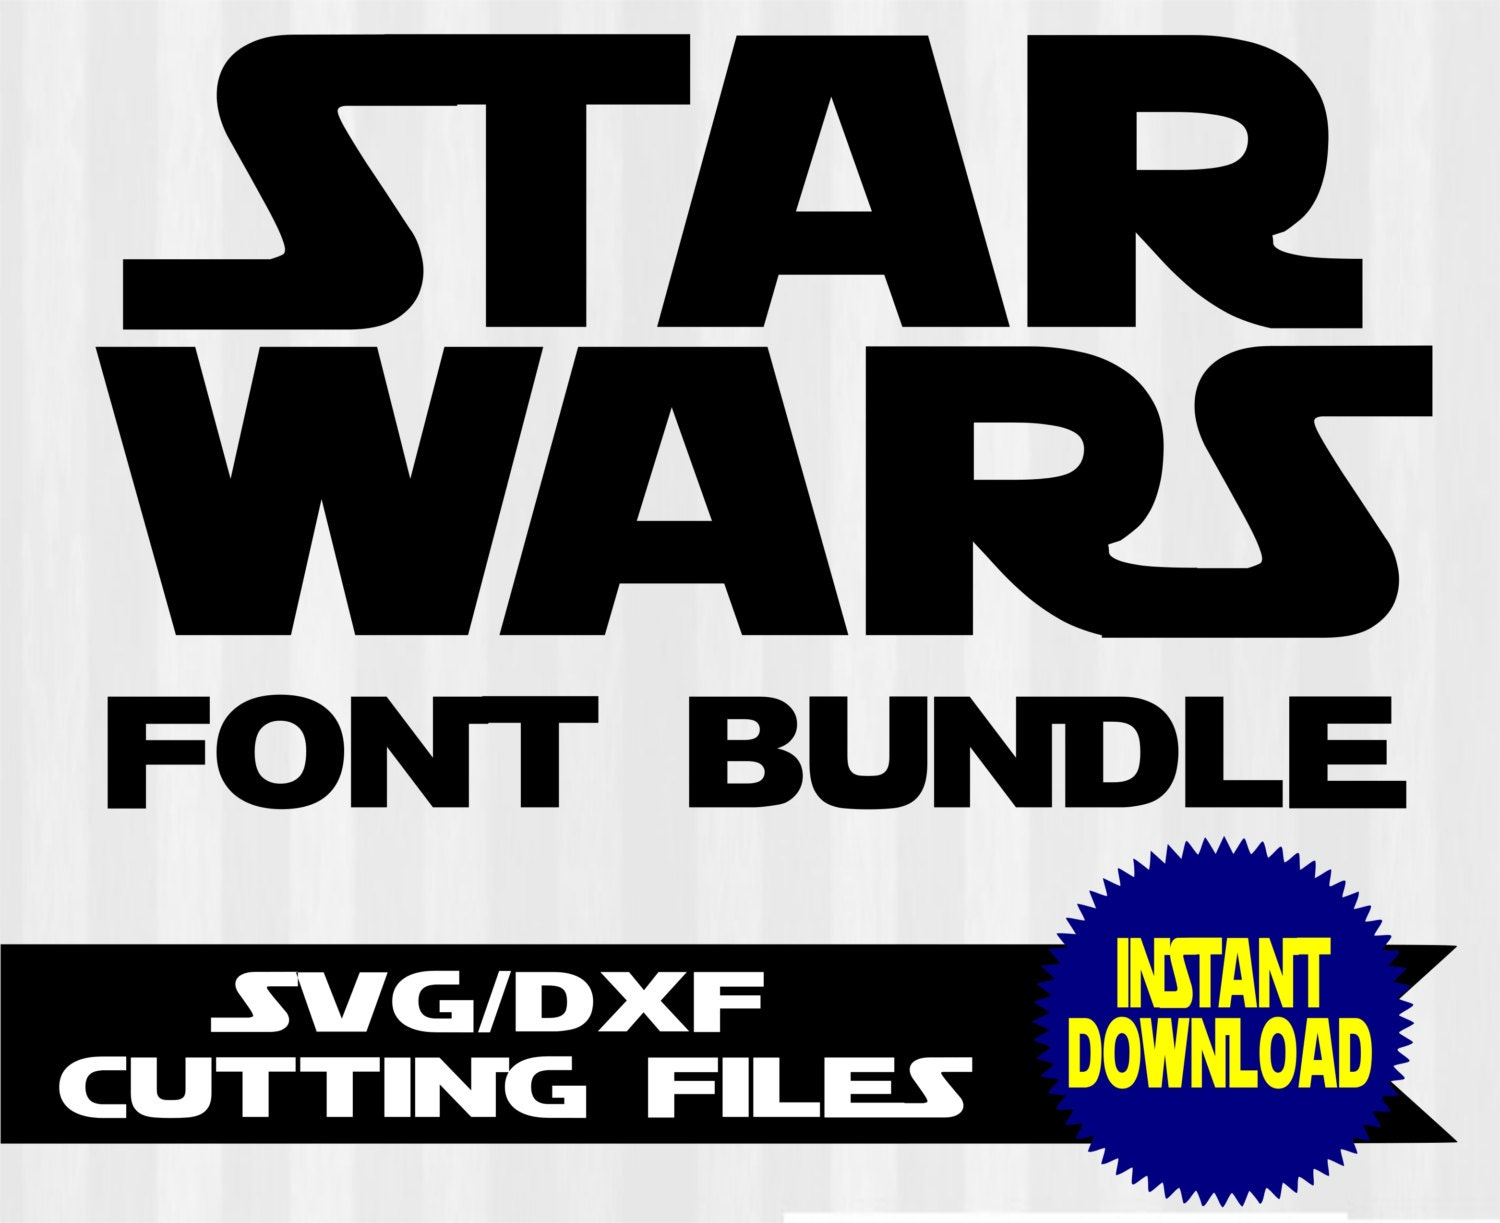 star wars font svg star wars svg star wars font by 5starclipart. Black Bedroom Furniture Sets. Home Design Ideas